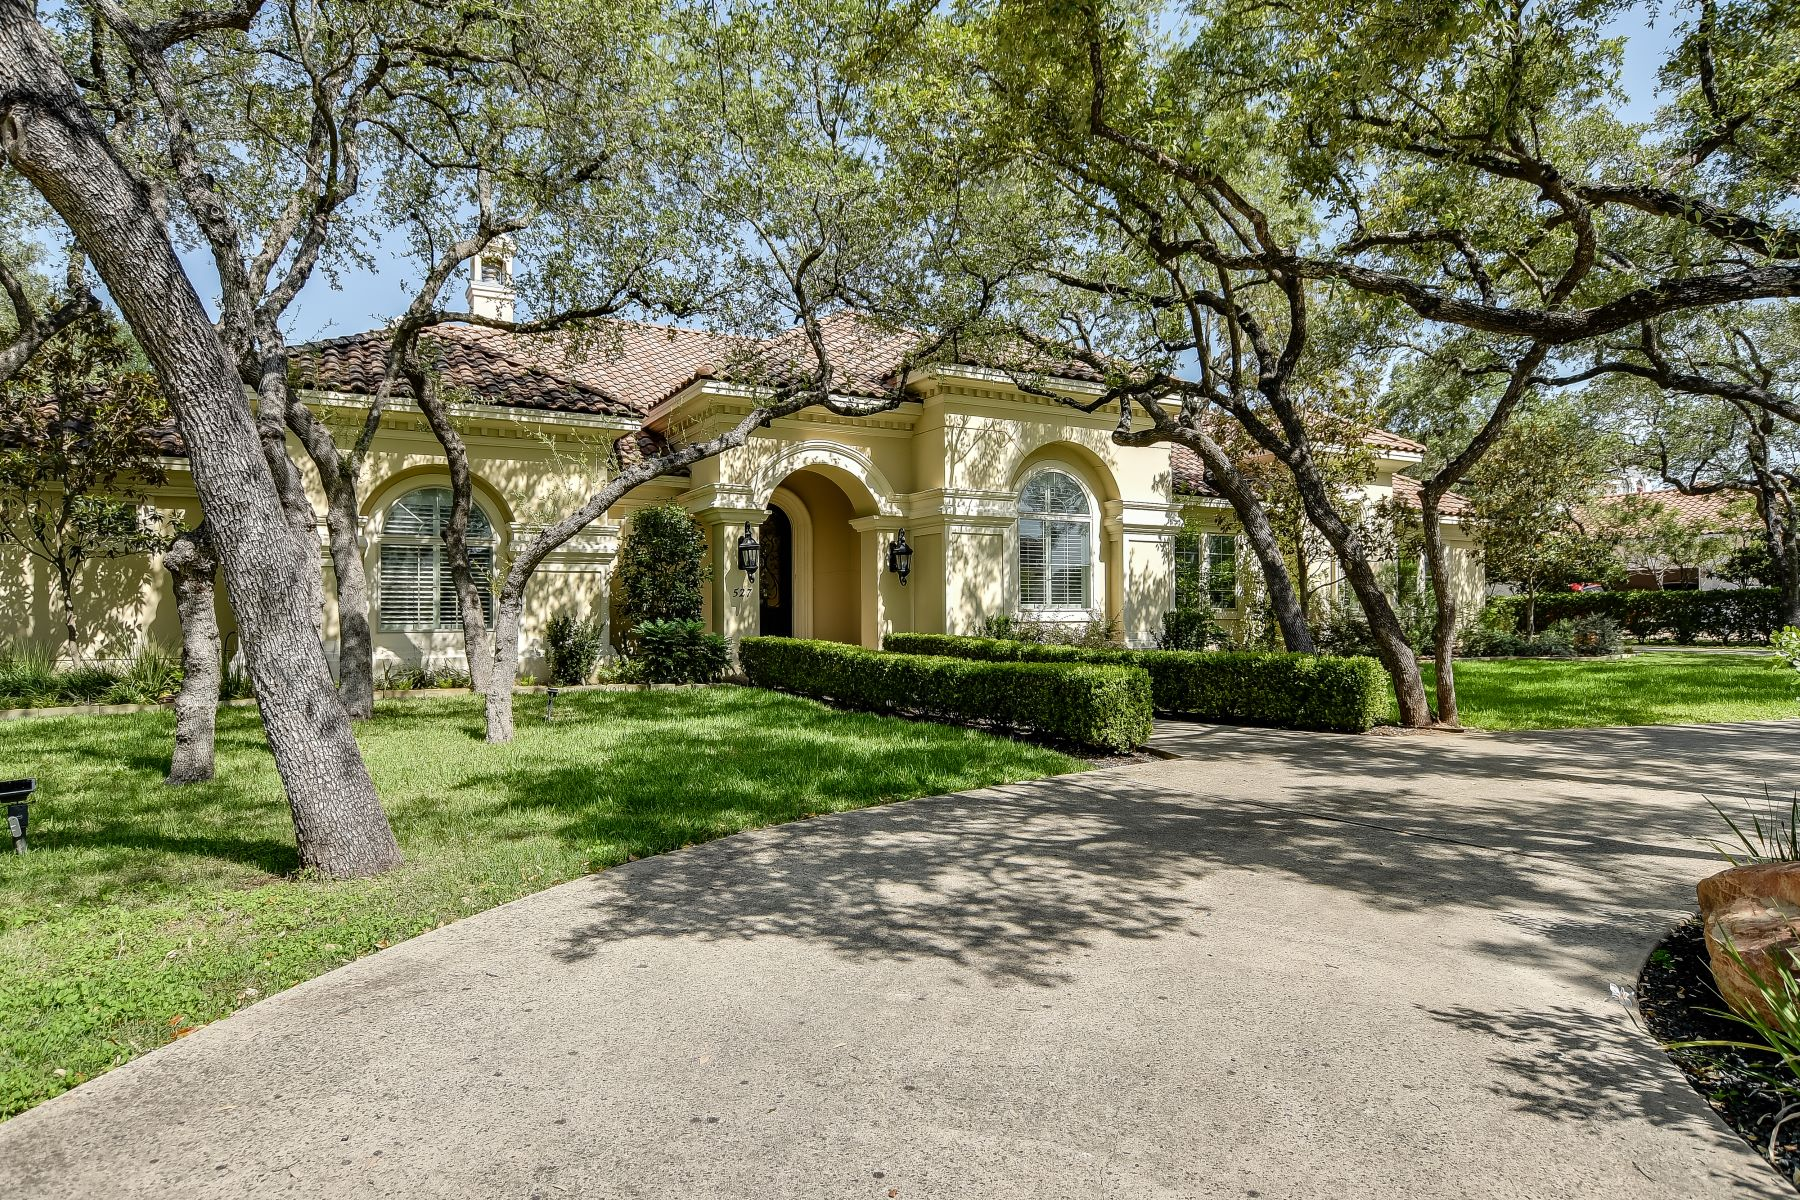 Single Family Homes for Sale at Luxurious Mediterranean Estate 527 Berwick Town Shavano Park, Texas 78249 United States